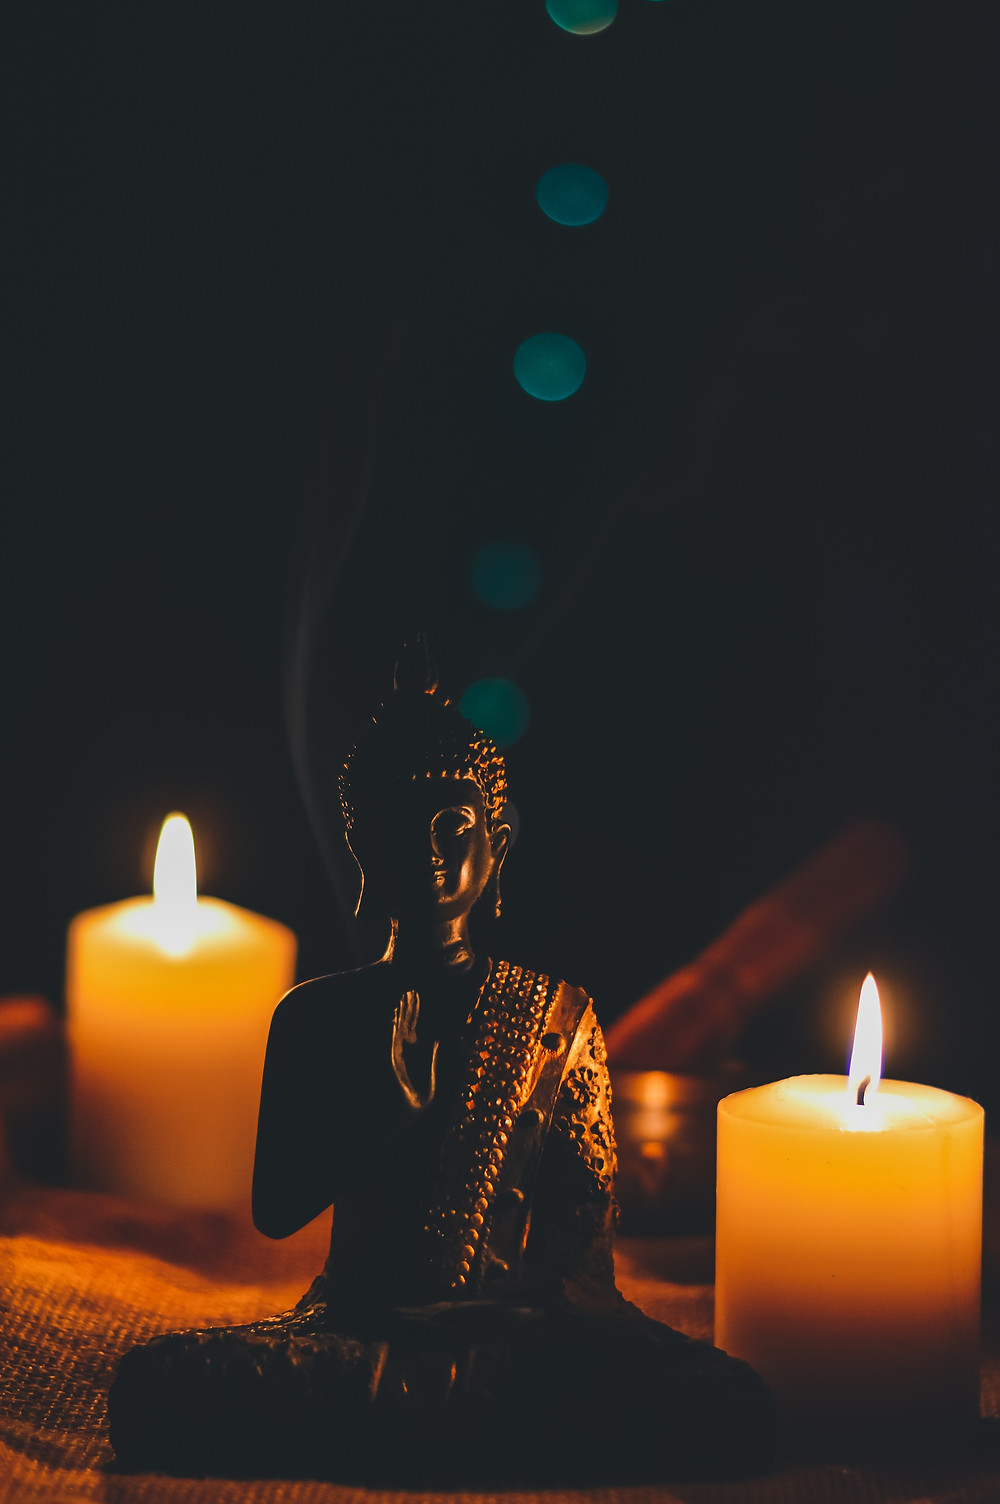 Buddha statue with burning candles.